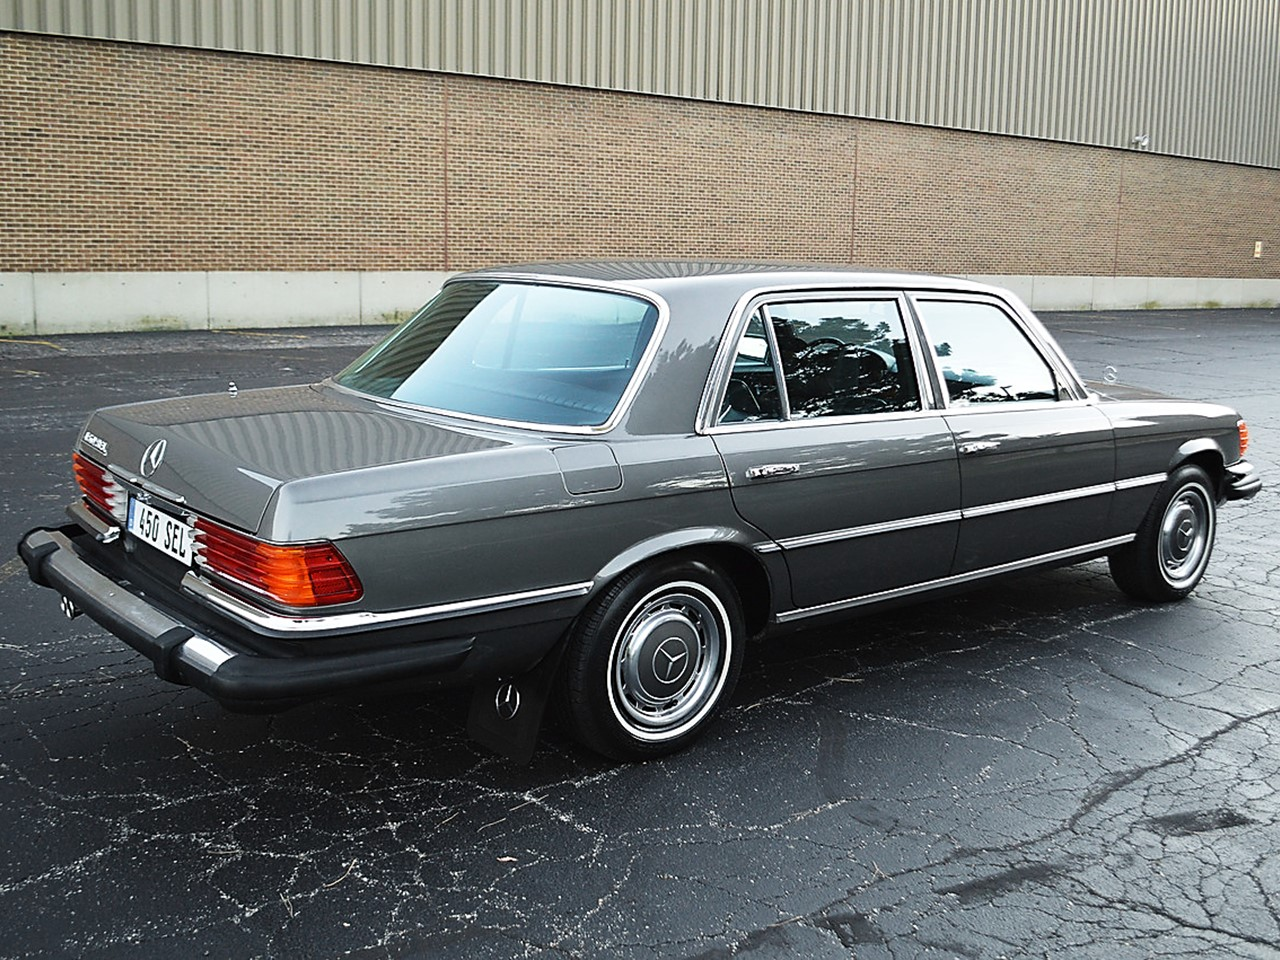 Retrospect 1976 mercedes benz 450 sel notoriousluxury for Mercedes benz 450